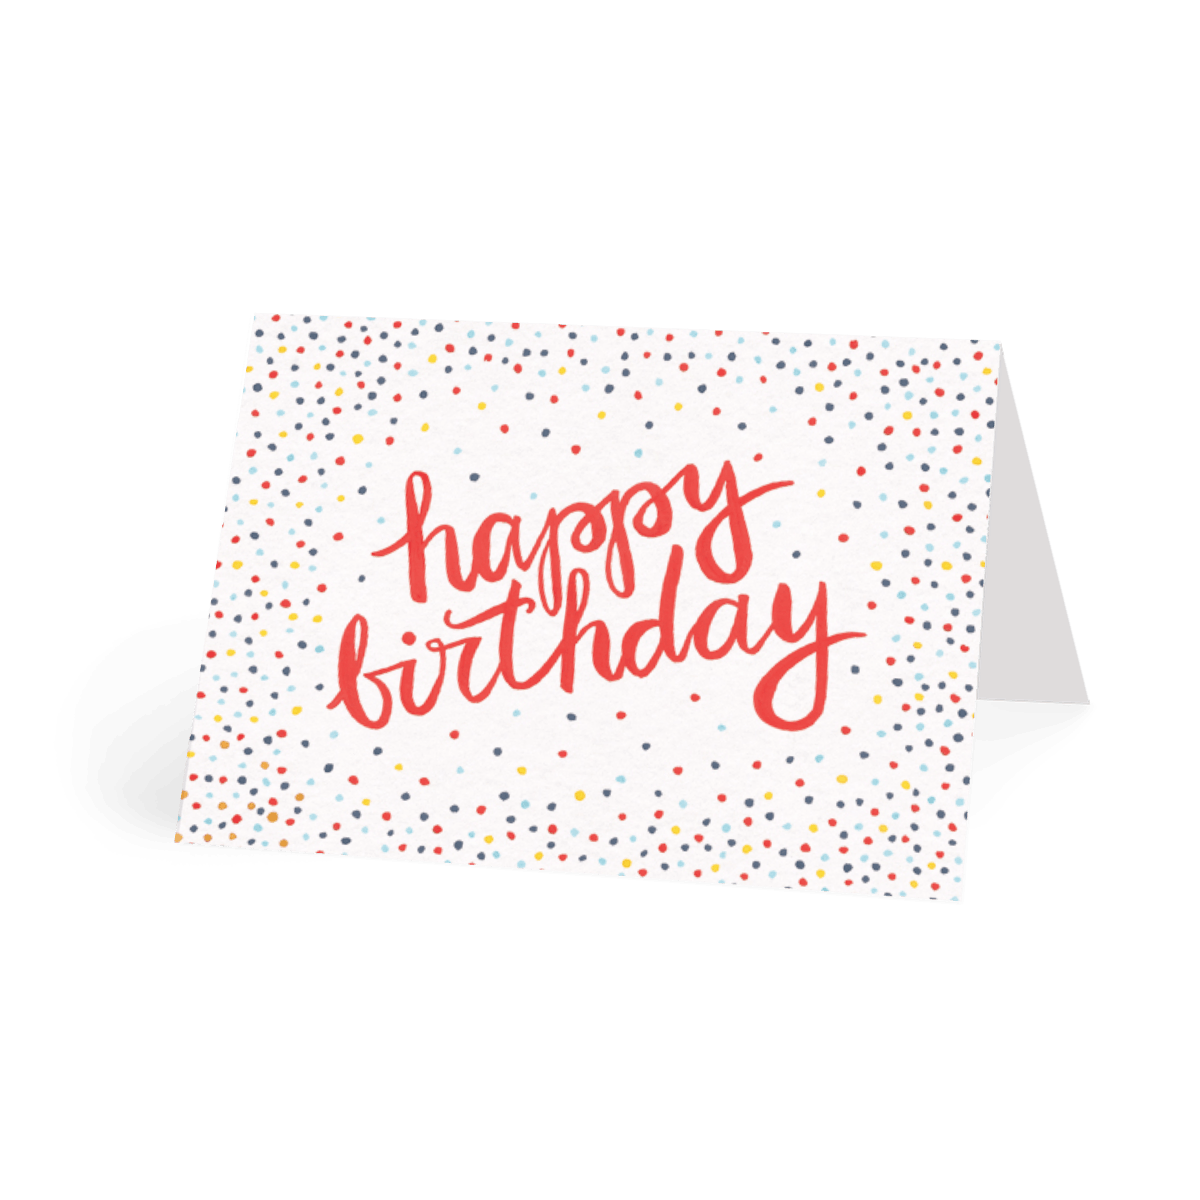 Https%3a%2f%2fwww.papier.com%2fproduct image%2f1426%2f14%2fbirthday confetti 396 front 1453909876.png?ixlib=rb 1.1